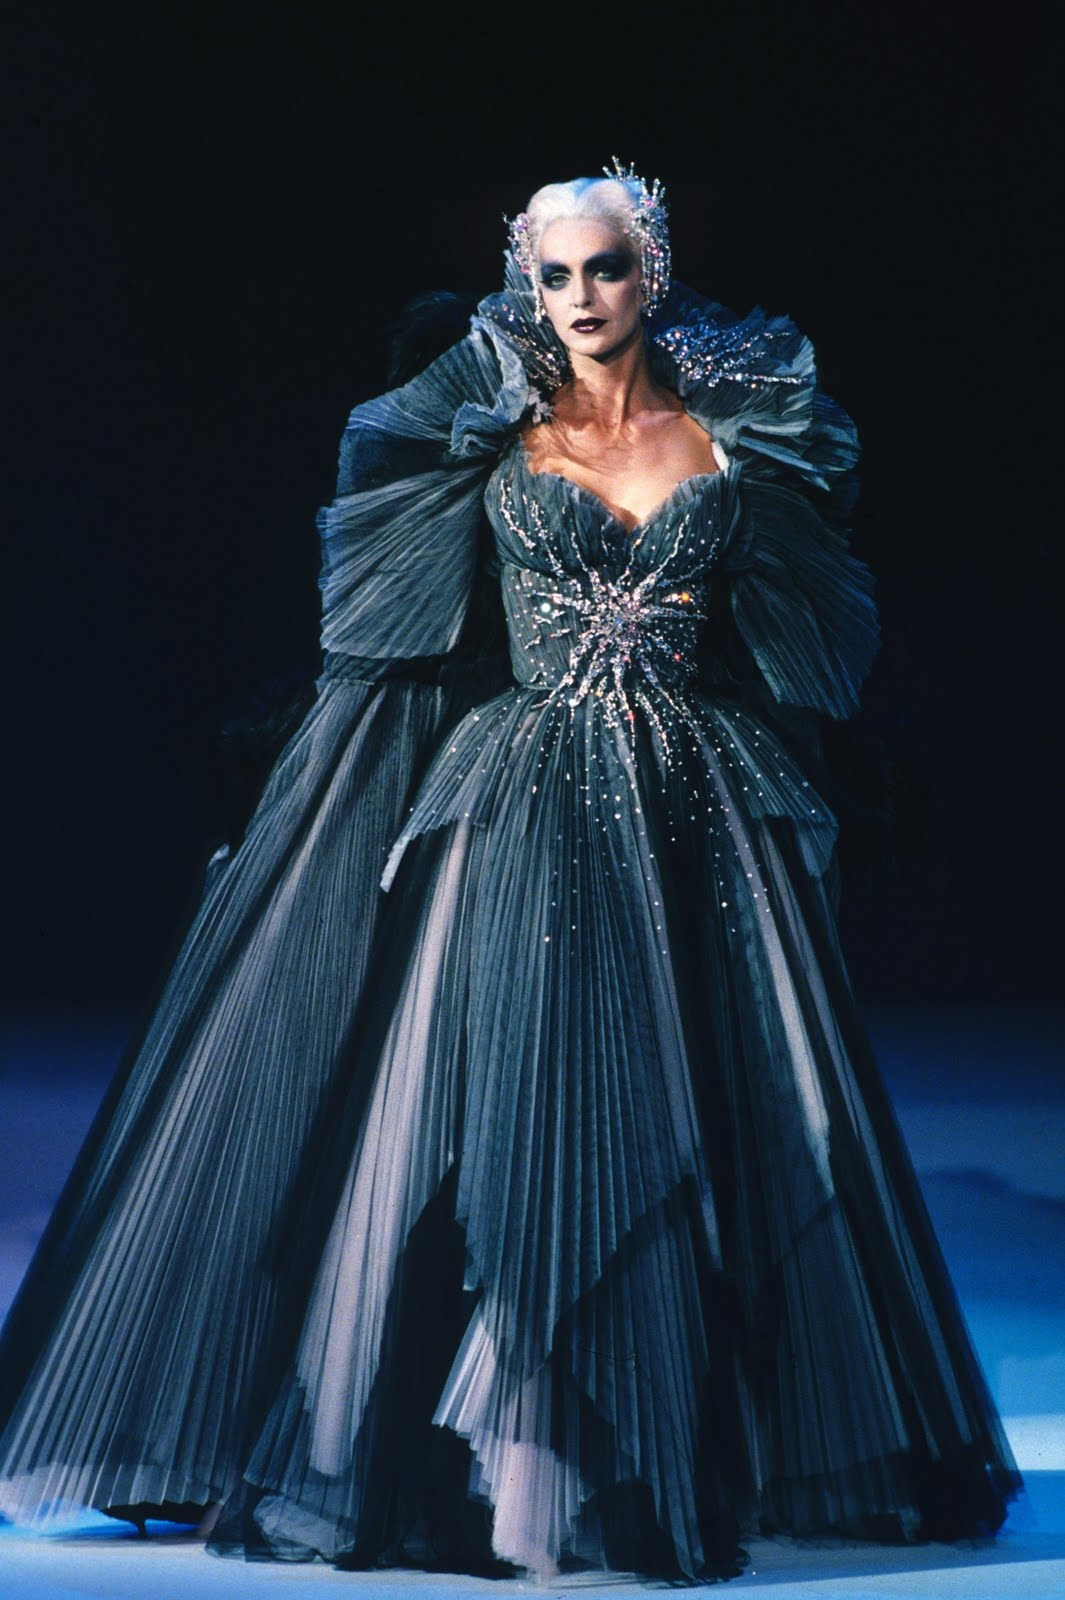 Theirry mugler fashion design kingscliff design history for Haute design